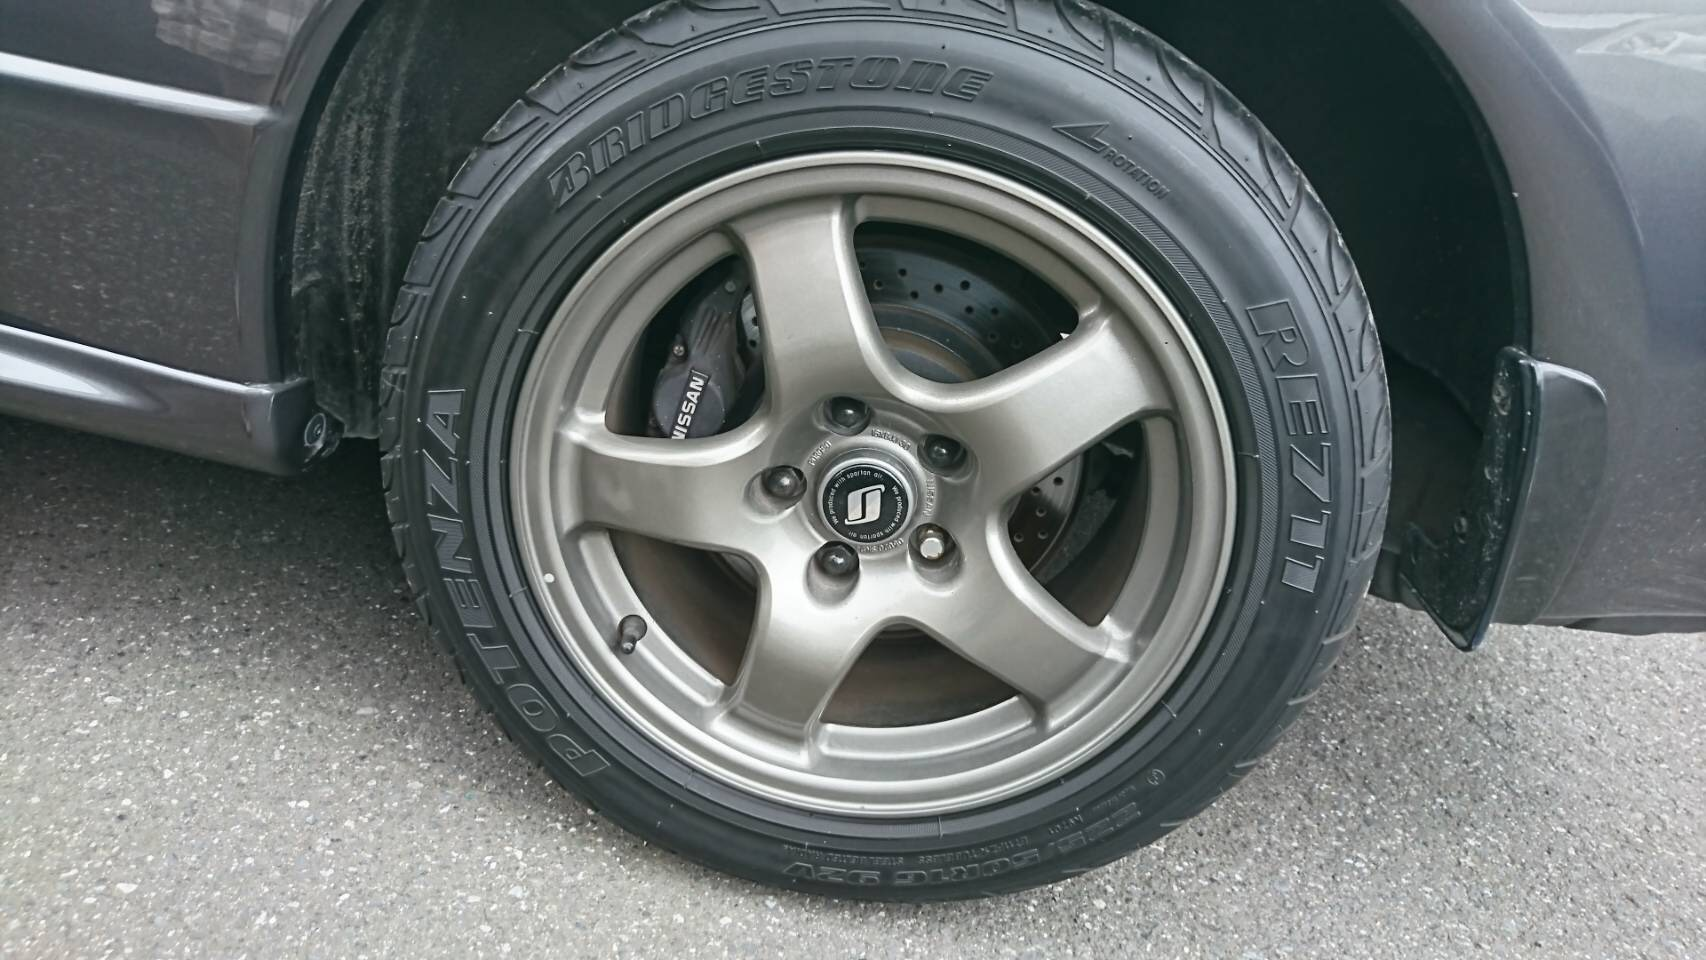 1992 Nissan Skyline R32 GTR wheel